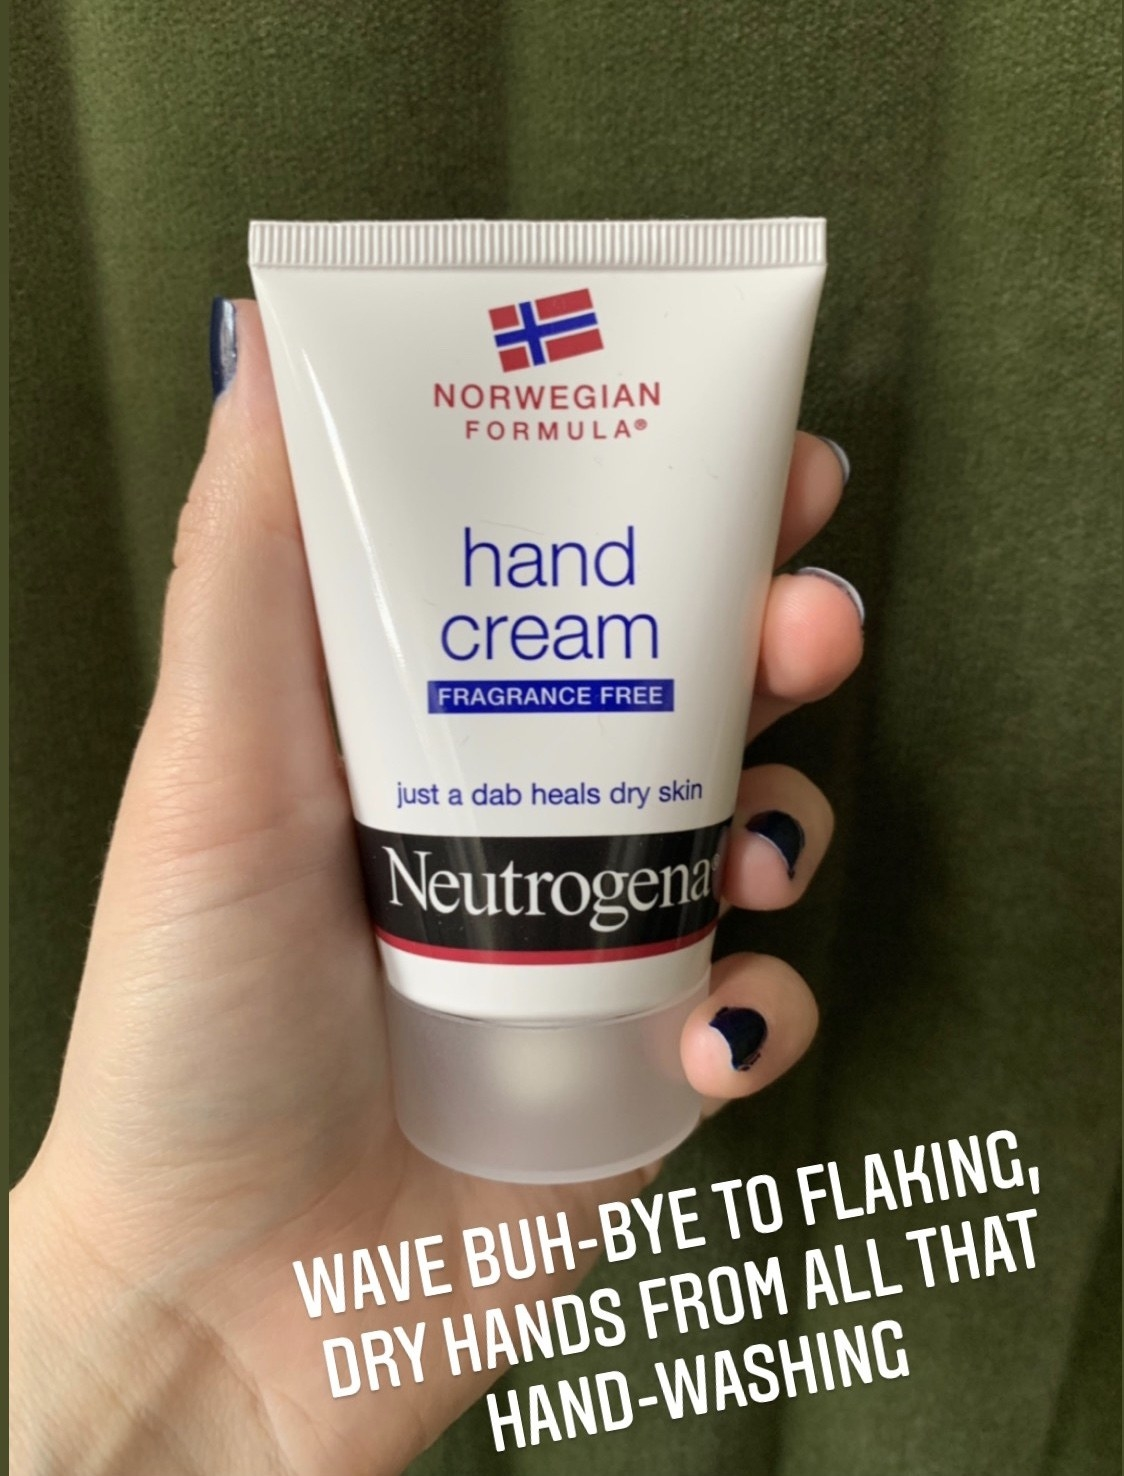 "Hand holding the small tube of cream with text ""wave buh-bye to flaking, dry hands from all that hand-washing"""